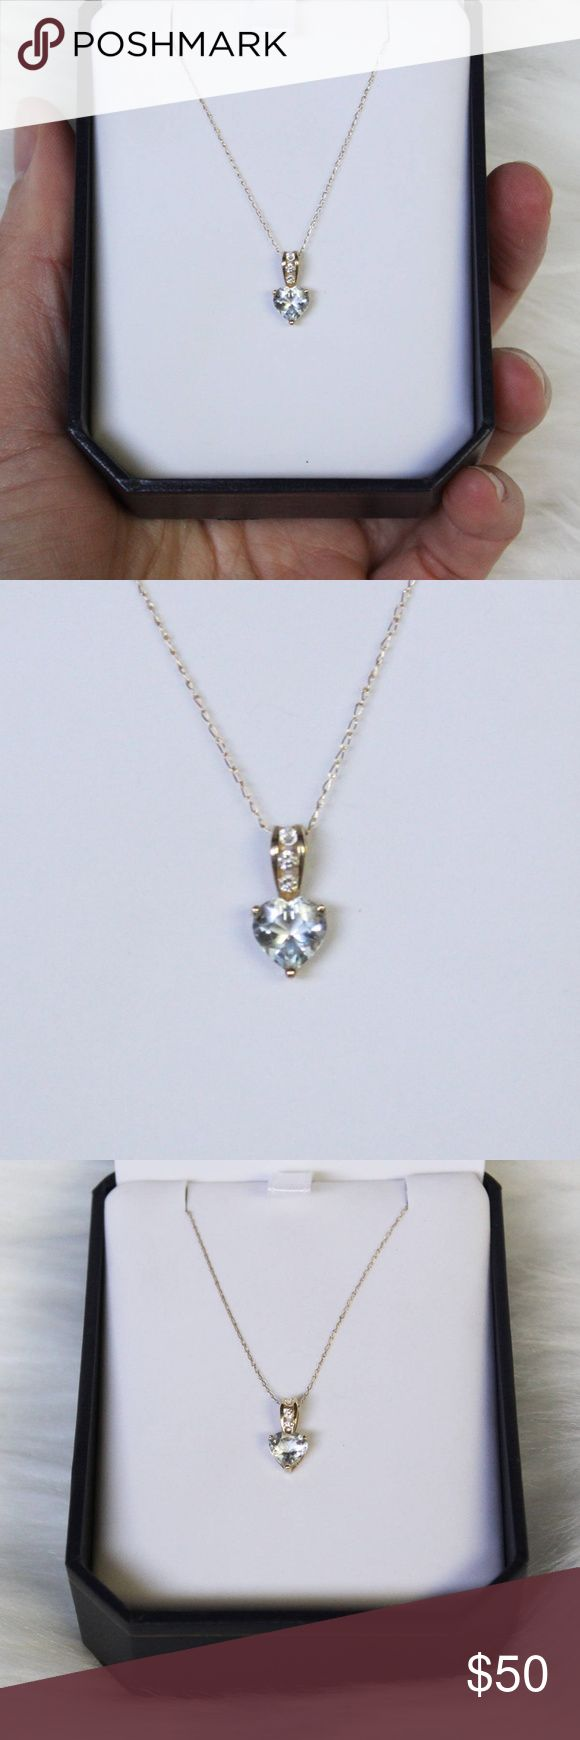 10k gold diamond aquamarine necklace 10k solid yellow gold chain and pendant Genuine Aquamarine heart shaped stone with three small round cut diamonds. Chain is 22 in long March birthstone Comes in box, ready to gift  Beautiful necklace in new condition! Jewelry Necklaces